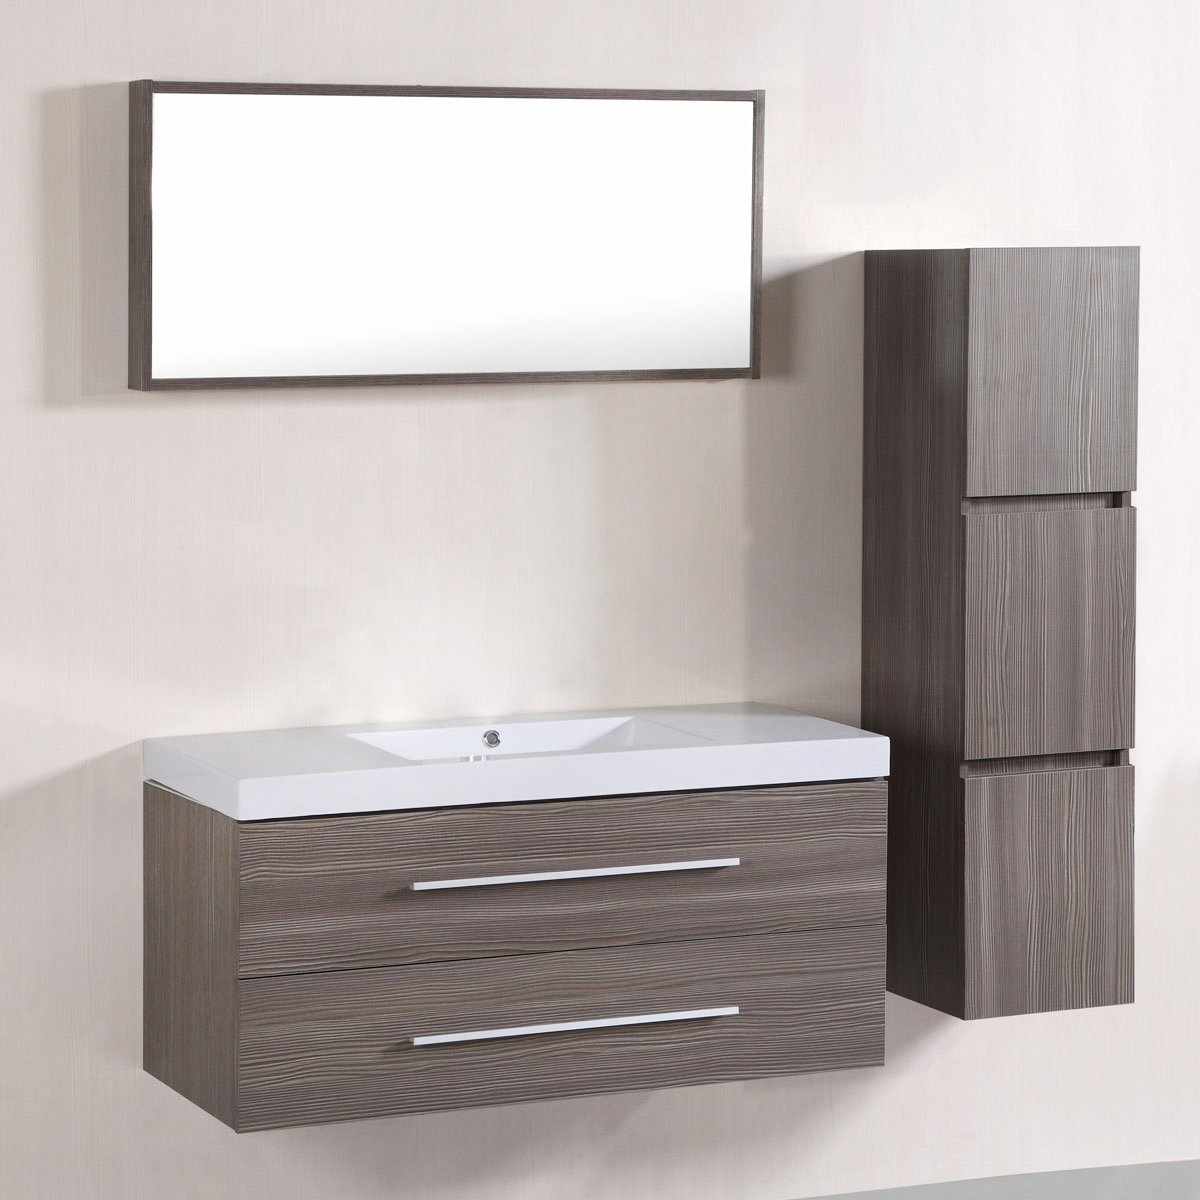 Decoraport 40 In. Wall Mount Bathroom Vanity Set with Single Sink and Mirror (A-T5167A)